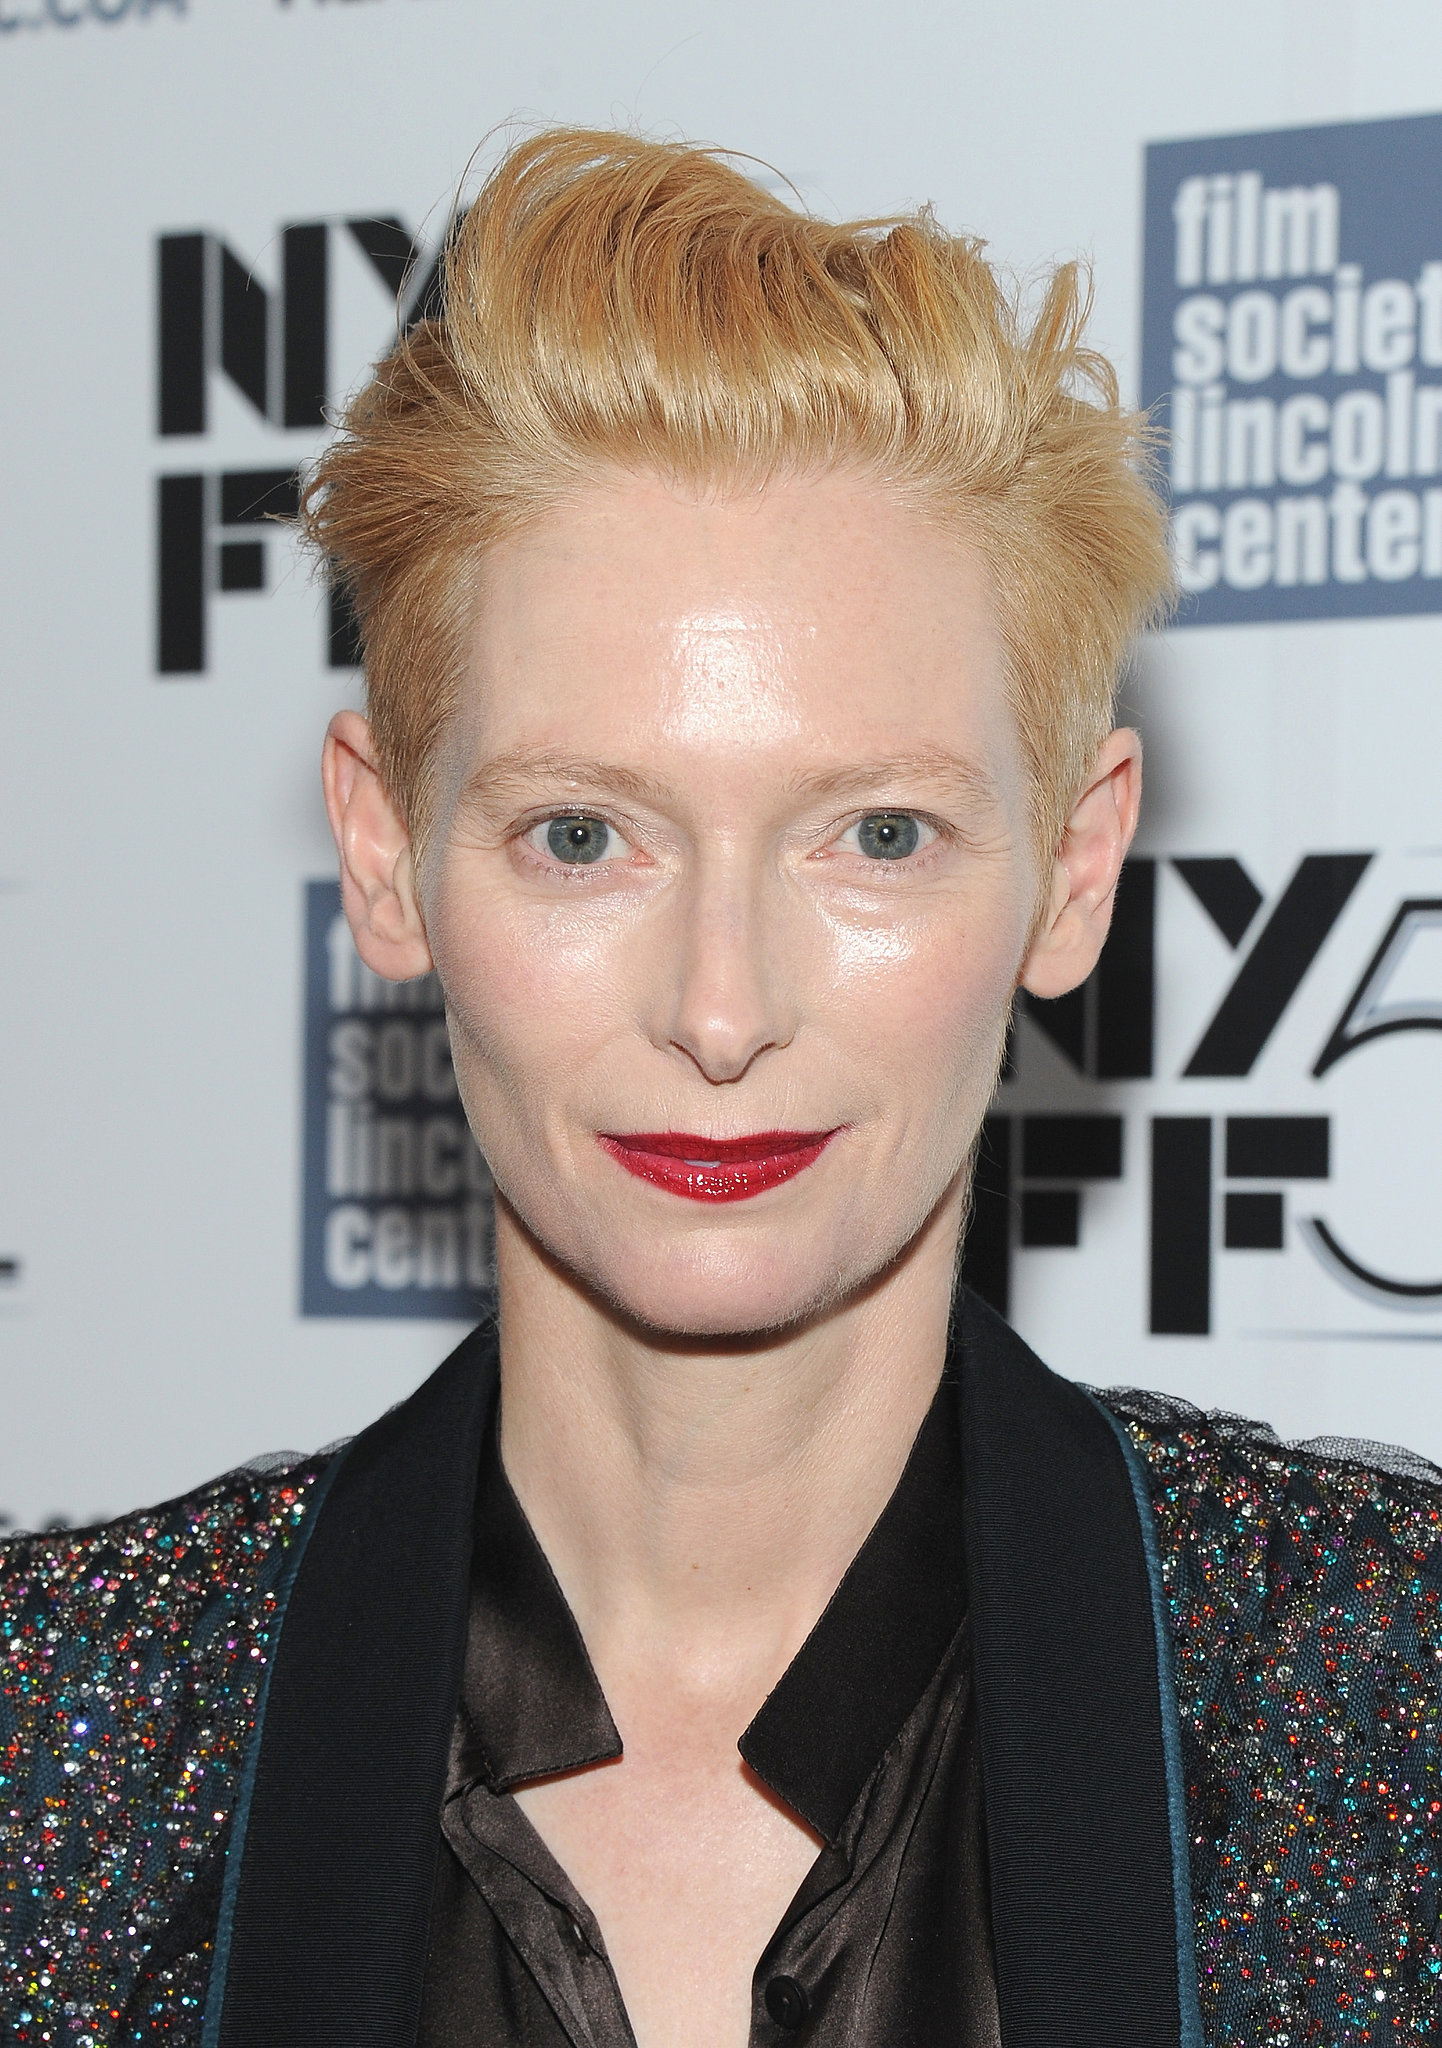 On the Only Lovers Left Alive red carpet, Tilda Swinton accented her